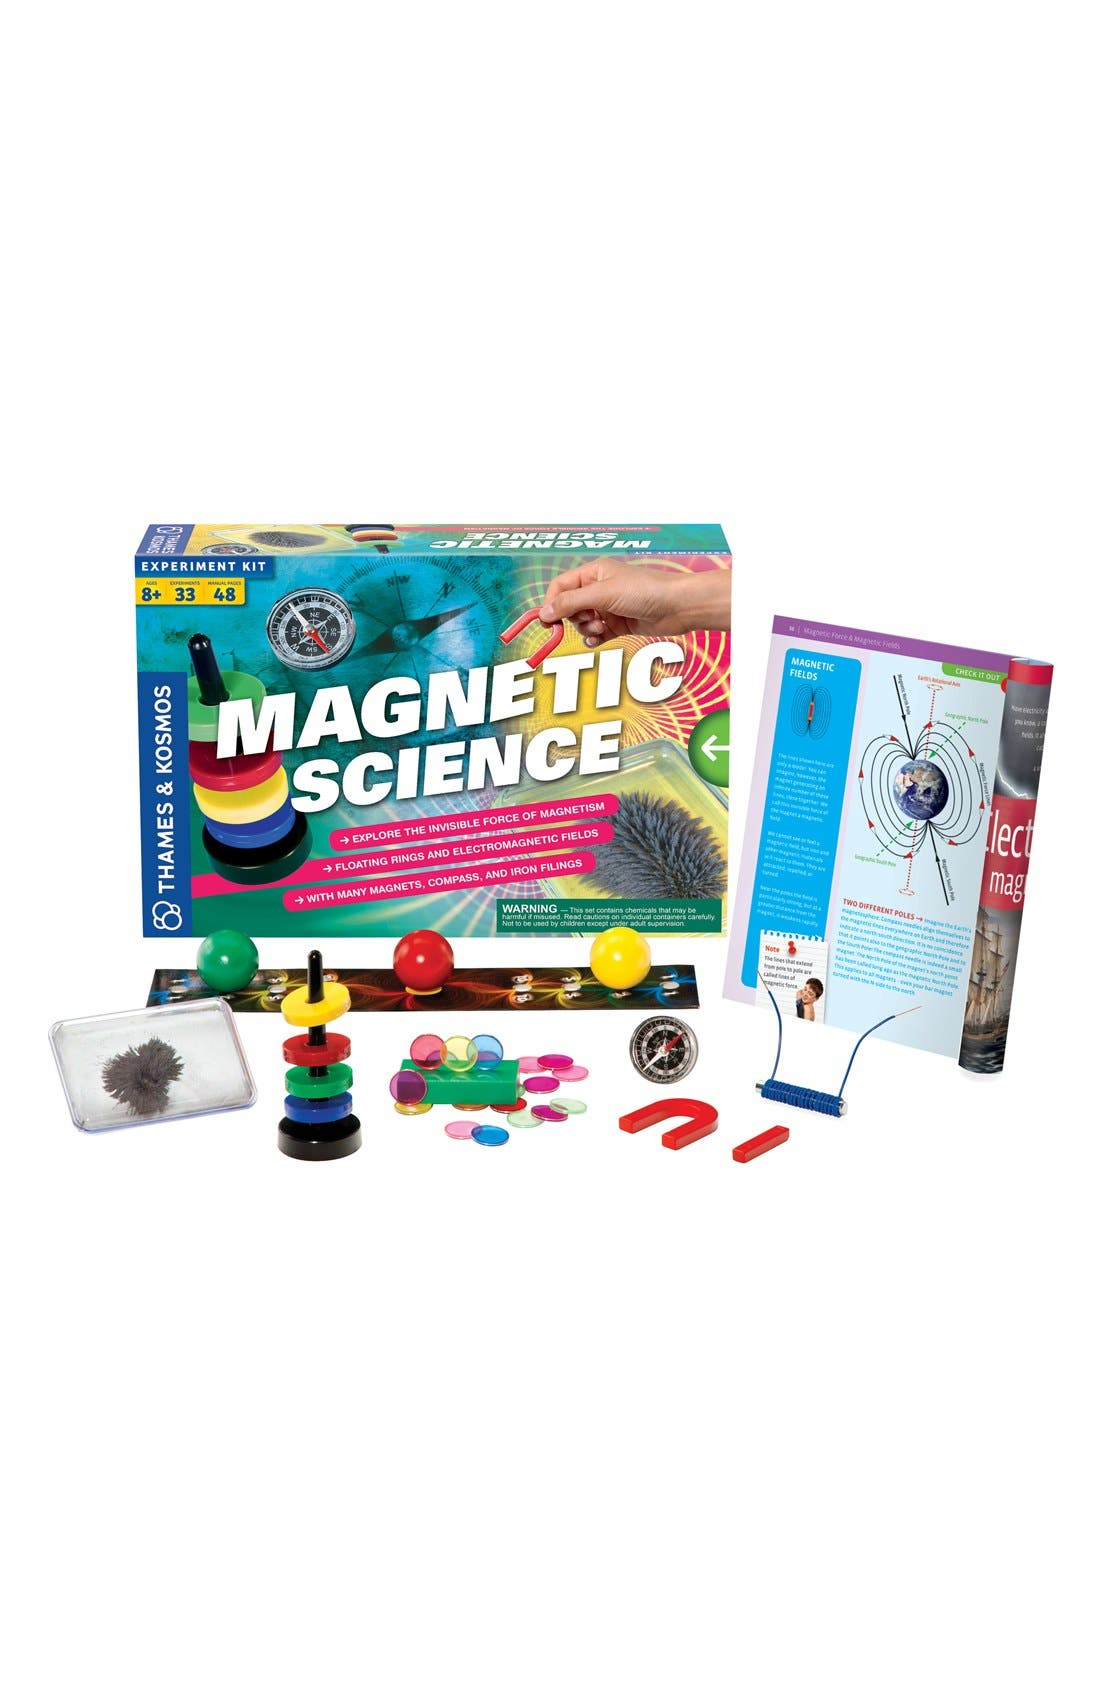 Thames & Kosmos 'Magnetic Science' Experiment Kit